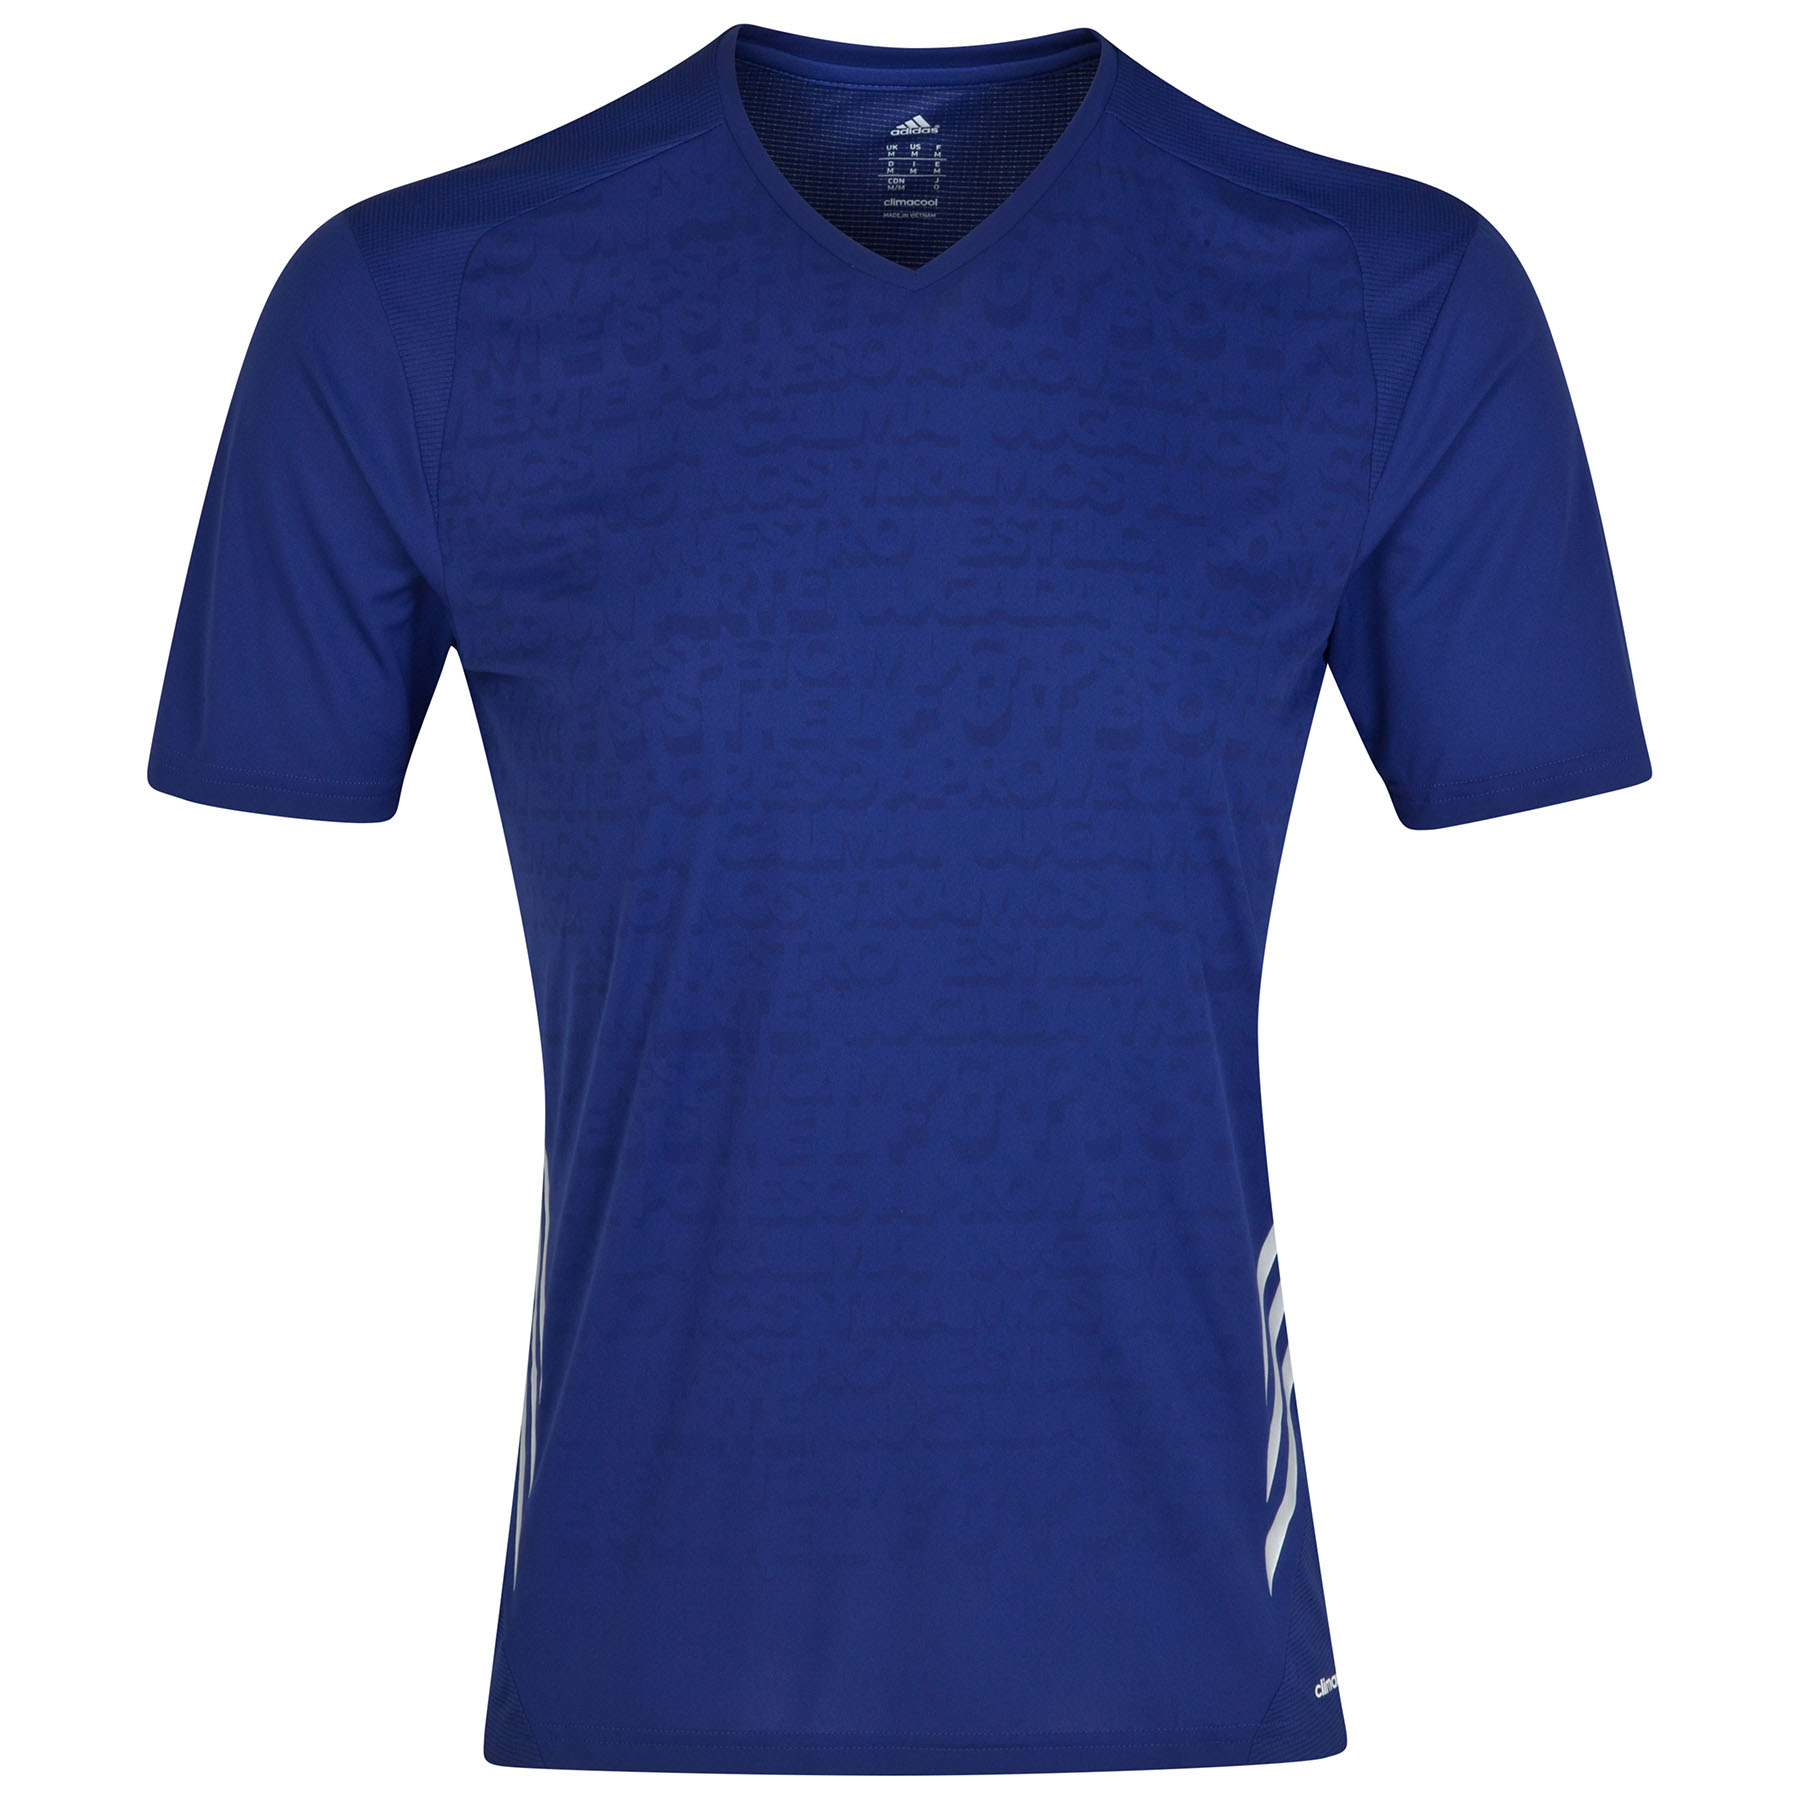 Adidas F50 Messi Training T-Shirt Navy